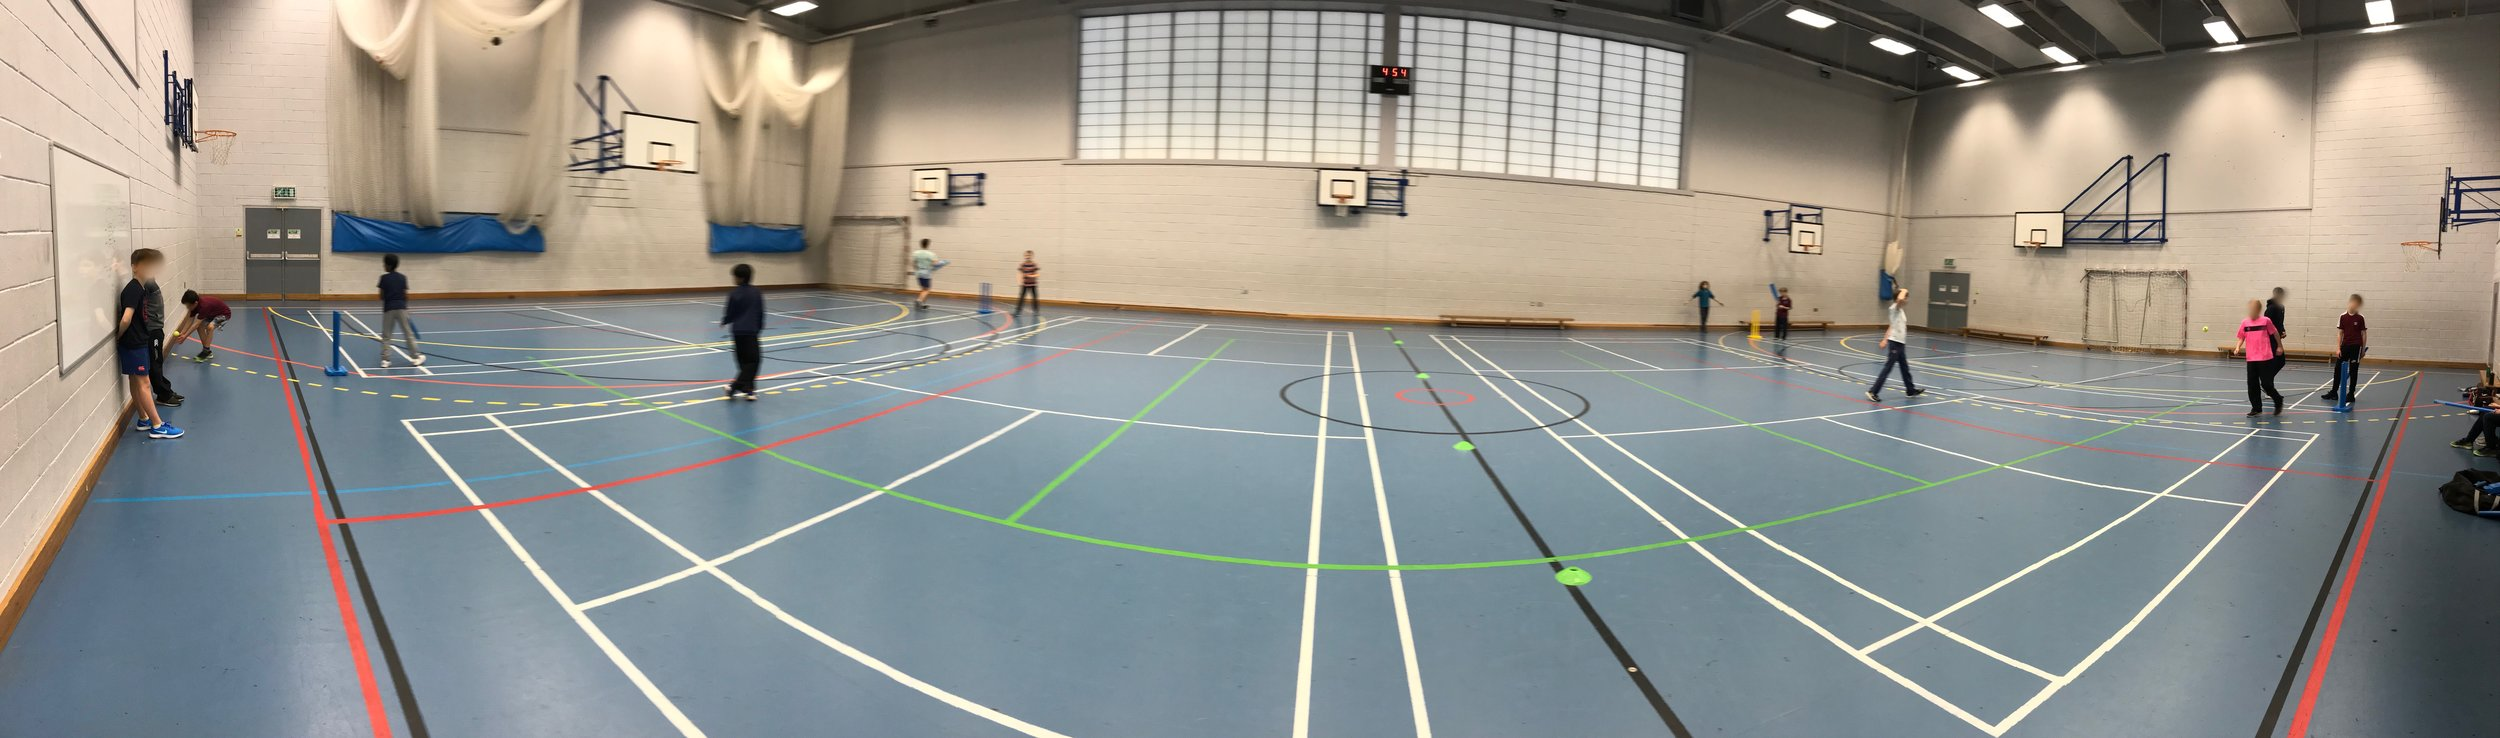 Switch cricket game in a large hall with U12 cricketers.